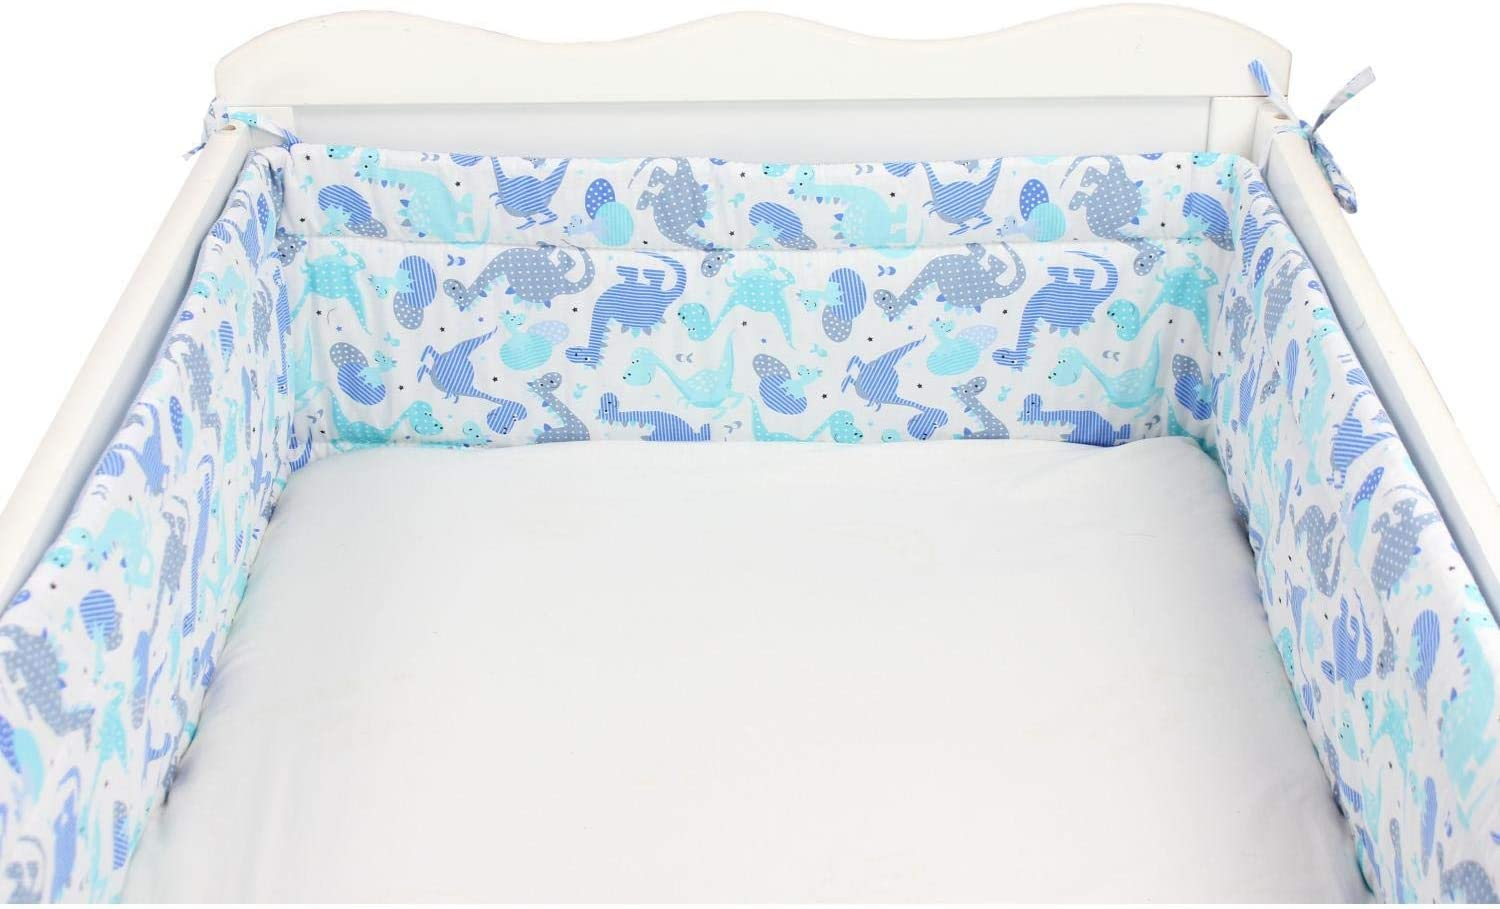 Cot 120x60 cm 360x30 cm Stars Blue//Dark Blue TupTam Baby Cot Bumper All Around Padded Bed Protection